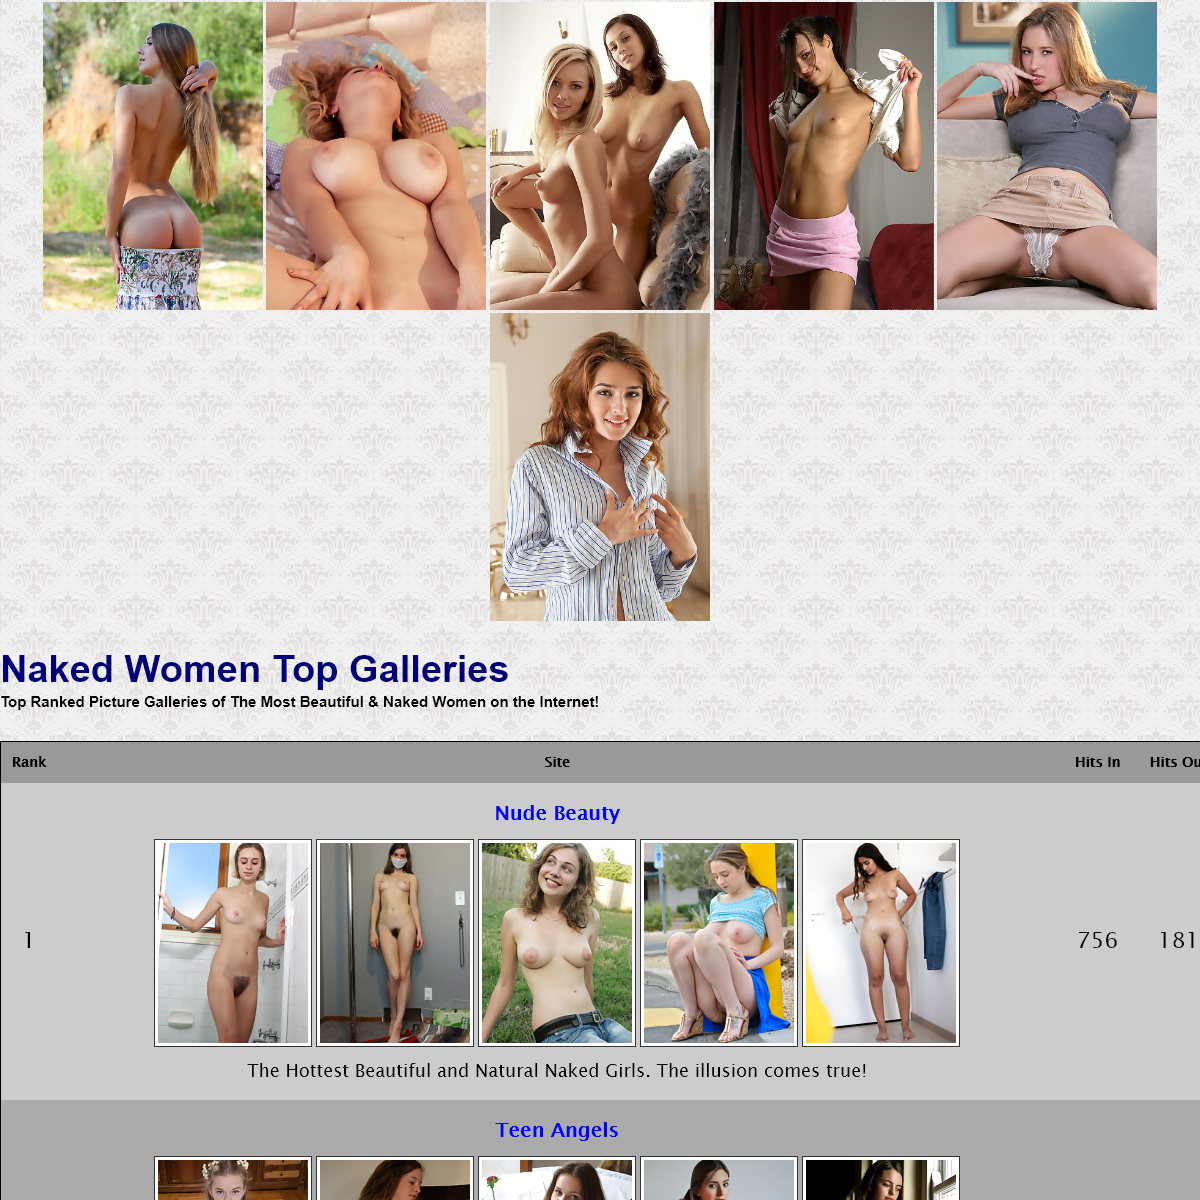 A complete backup of www.nakedwomenweb.com